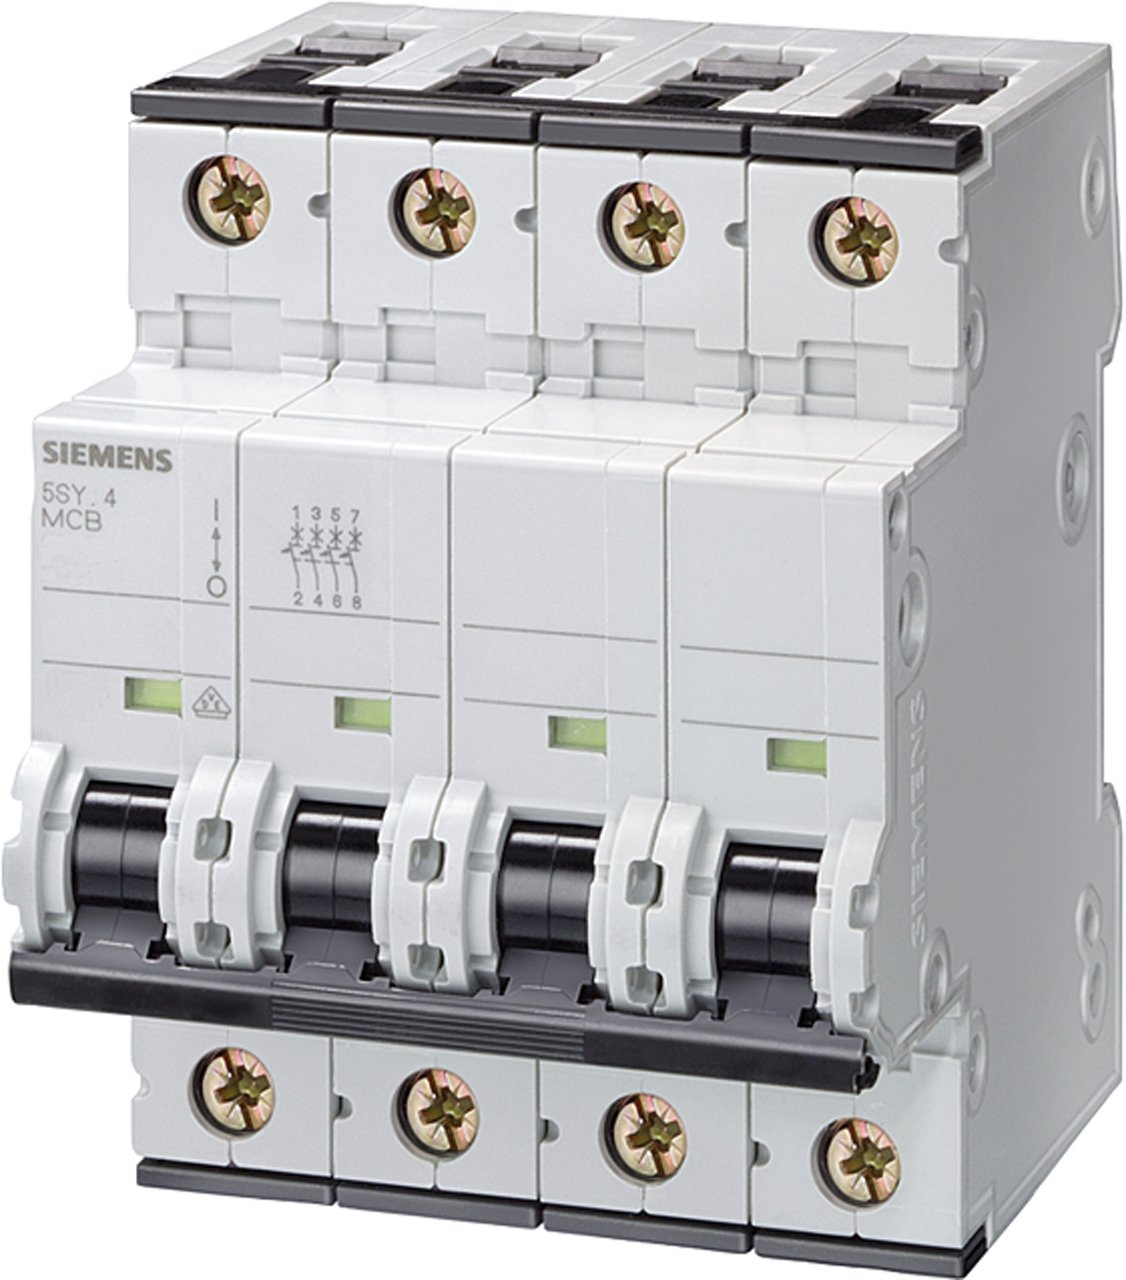 Siemens 5SY64067 Supplementary Protector, UL 1077 Rated, 4 Pole Breaker, 6 Ampere Maximum, Tripping Characteristic C, DIN Rail Mounted